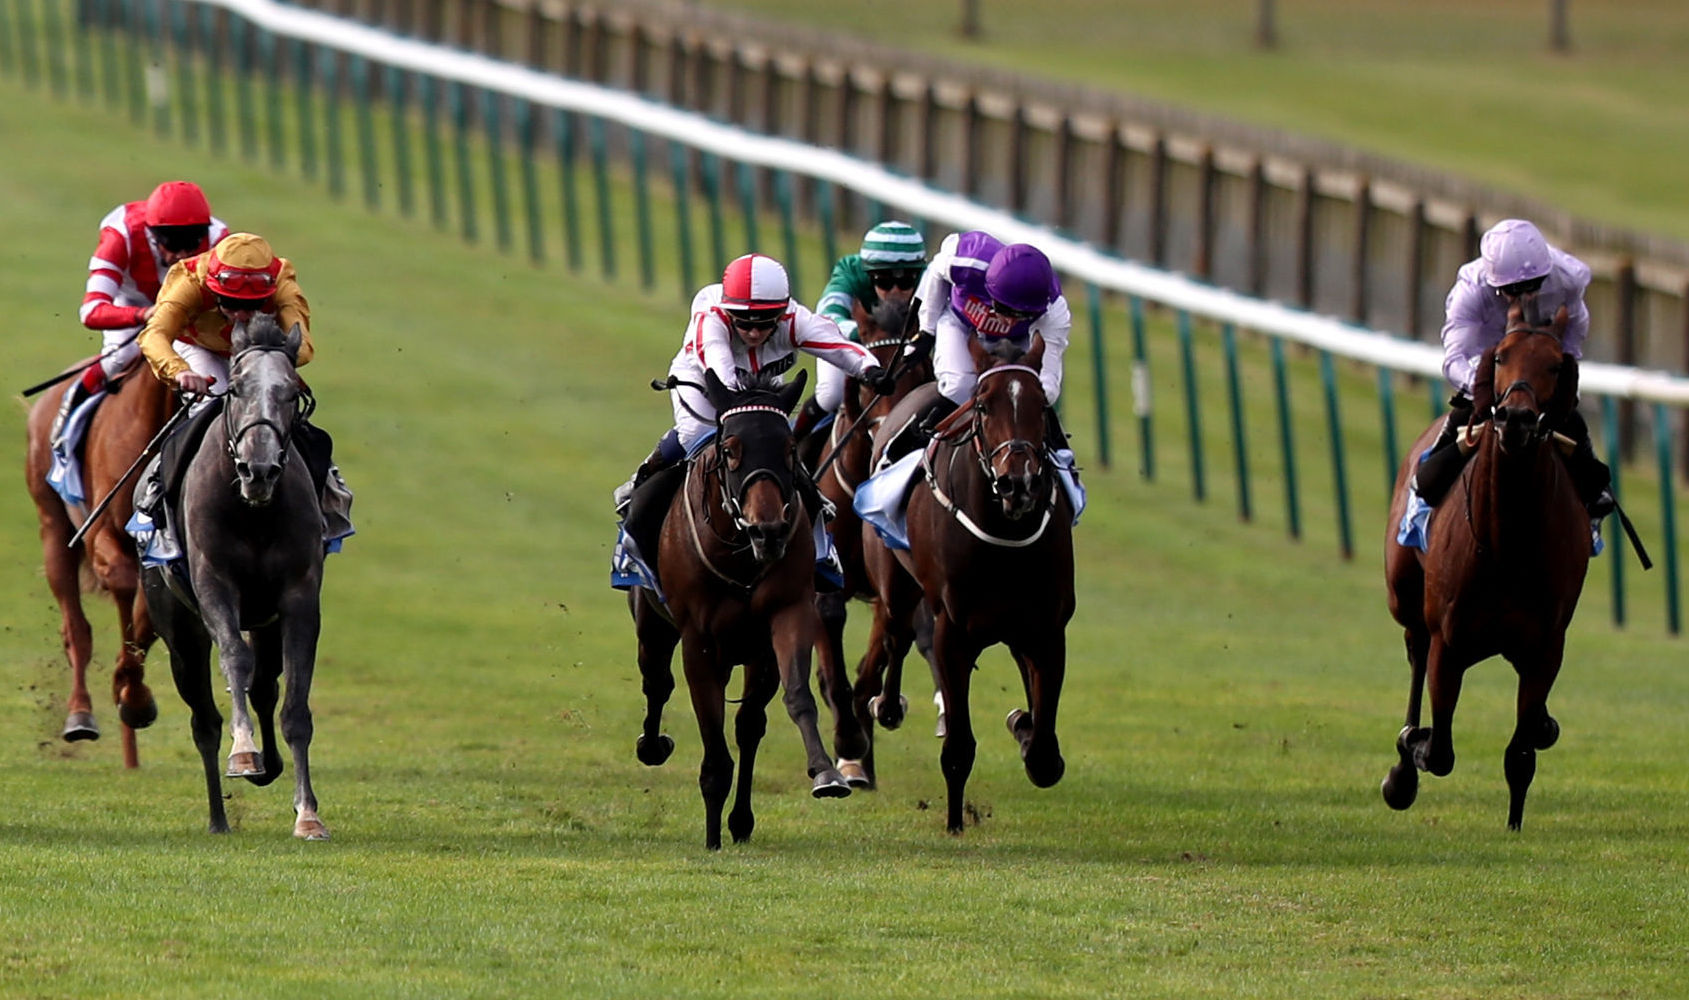 VALUABLE VICTORY: Eve Johnson Houghton's Scarlet Dragon (red & white cap), ridden by Hollie Doyle, heads for victory in the Godolphin Flying Start Old Rowley Cup at Newmarket